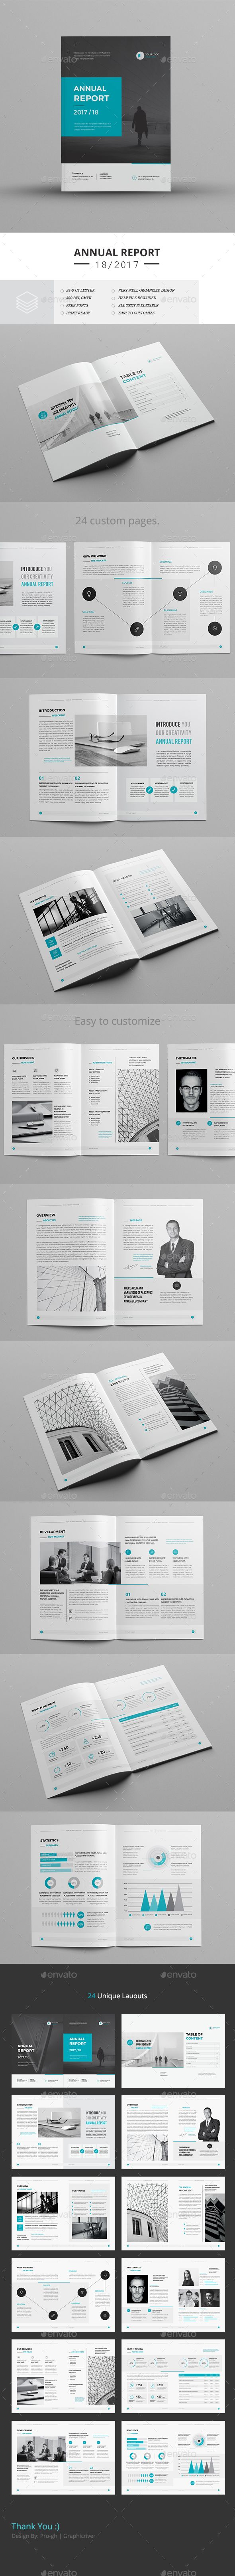 Annual Report — InDesign INDD #design #8.27x11.69 • Download ➝ https://graphicriver.net/item/annual-report/19523781?ref=pxcr